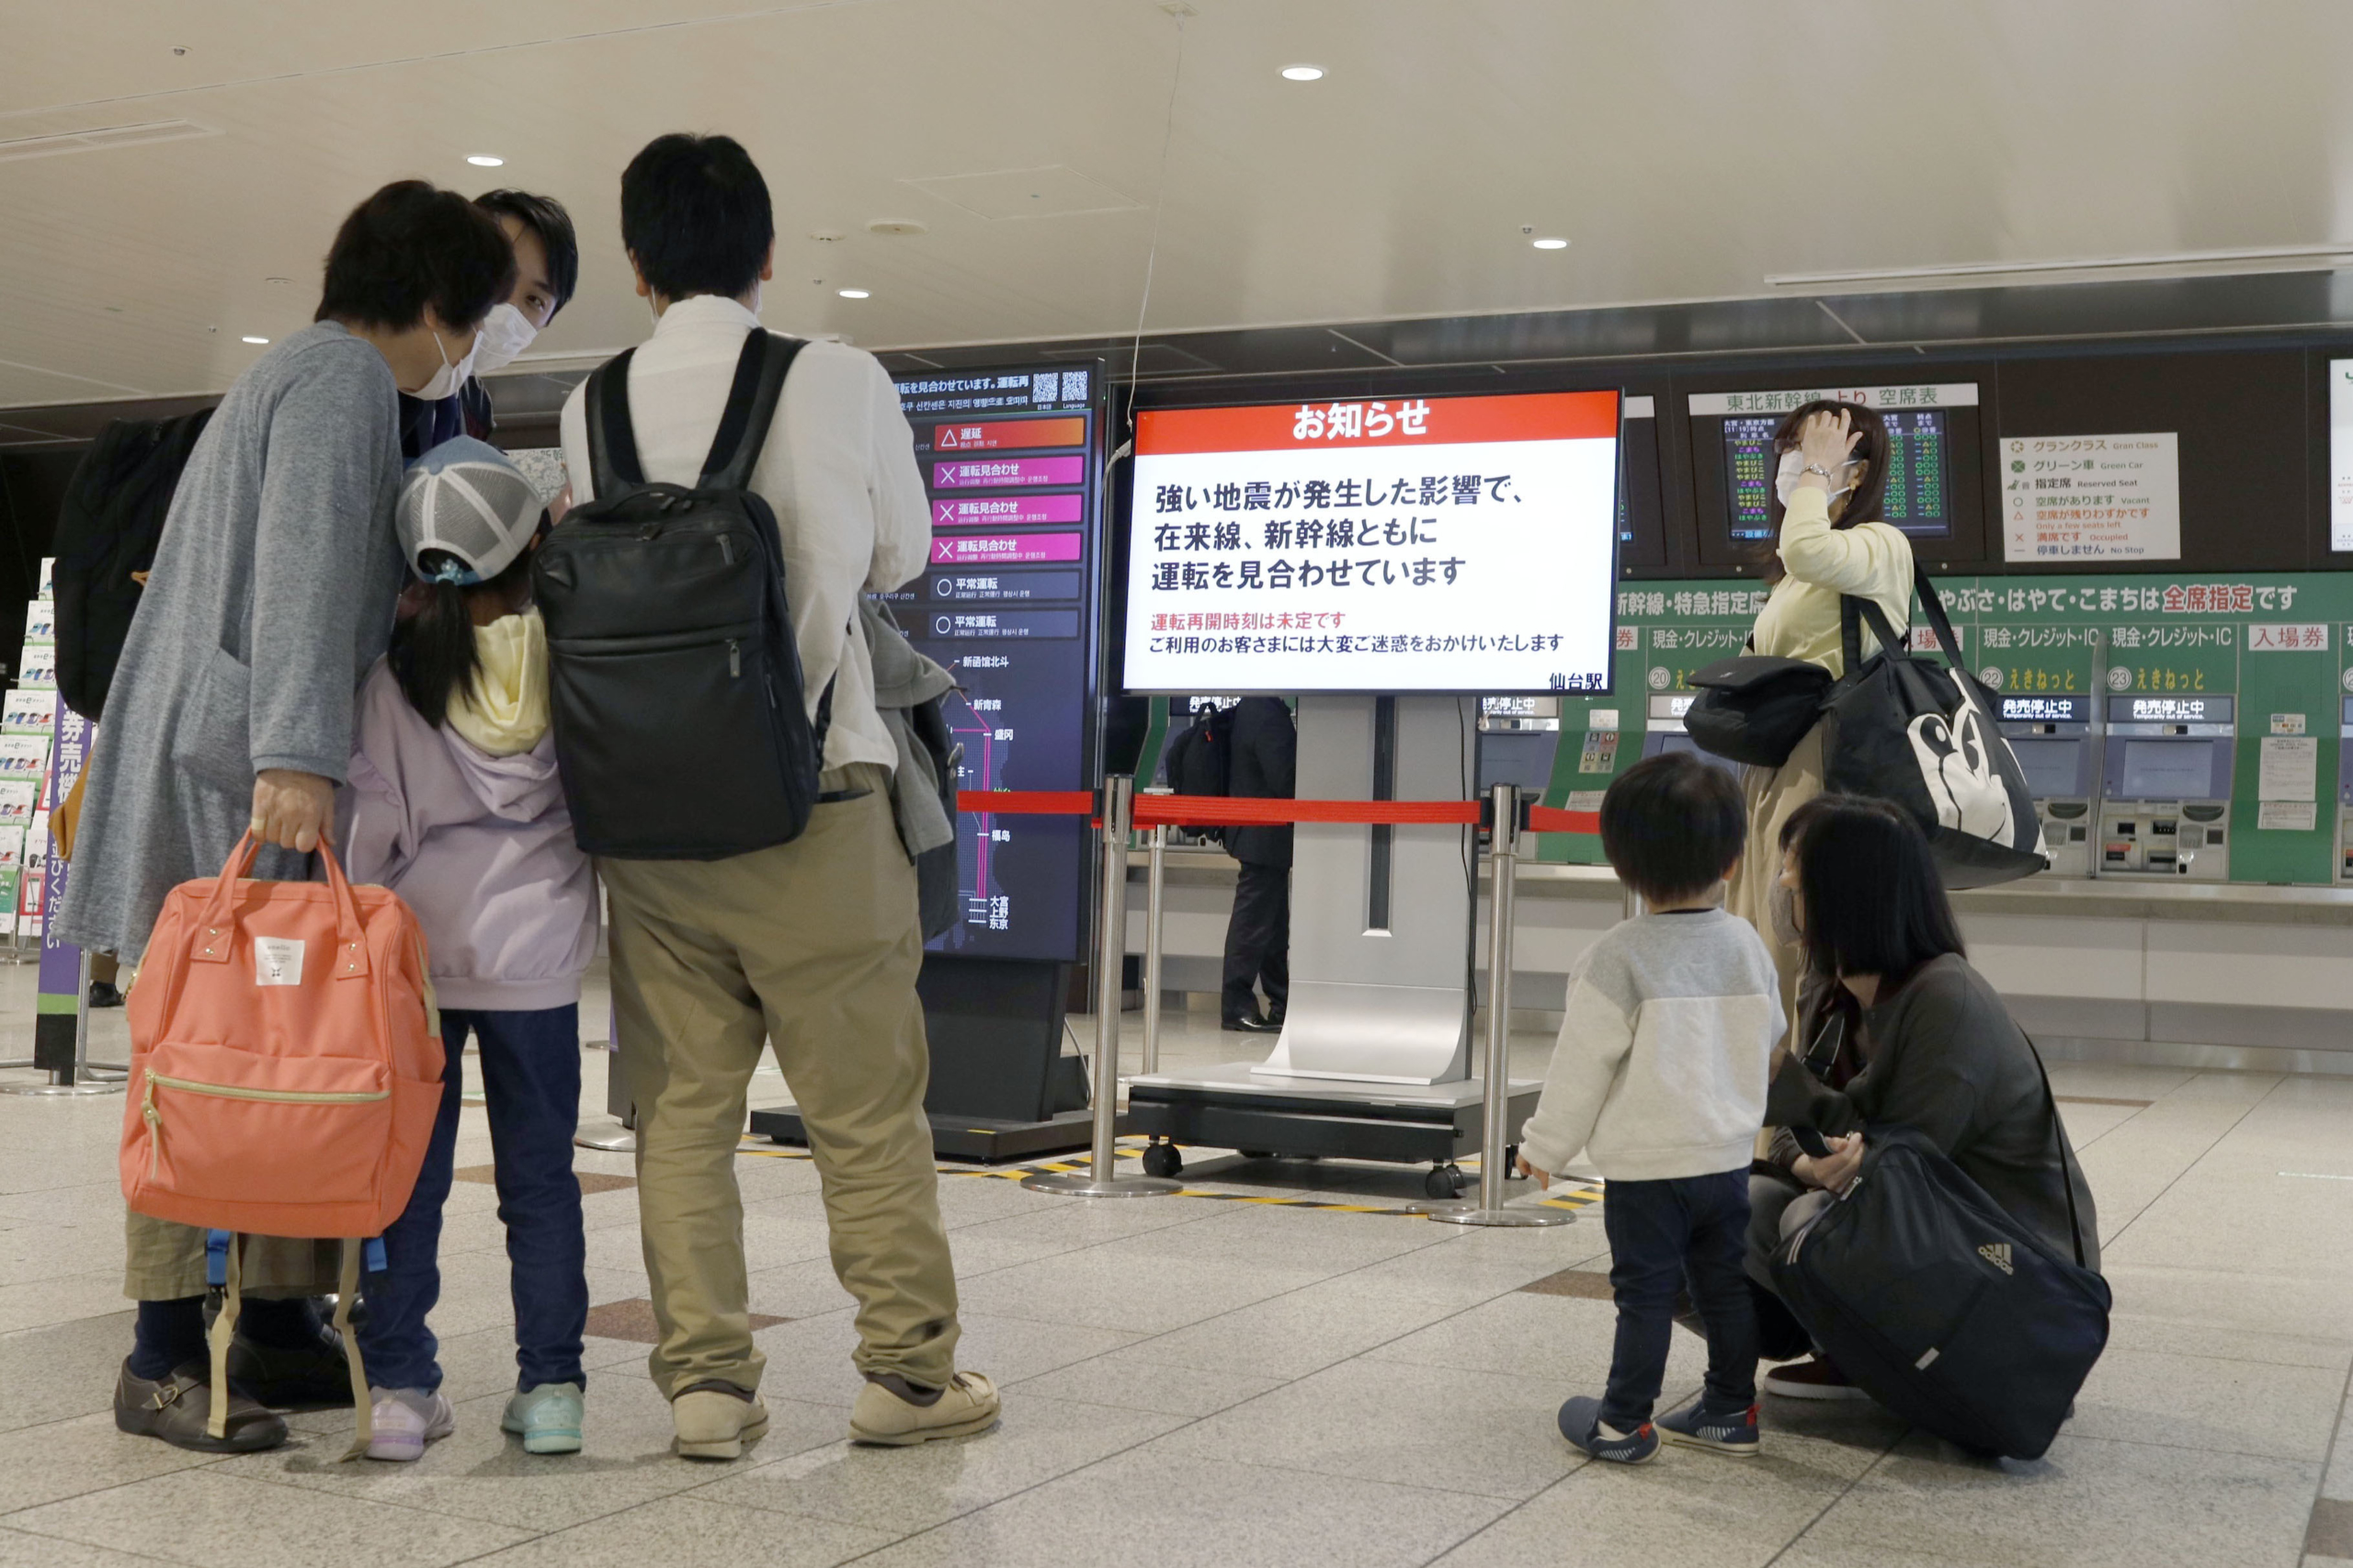 People wait outside the ticket gates of JR Sendai Station after an earthquake shook the area, halting bullet train lines. | KYODO